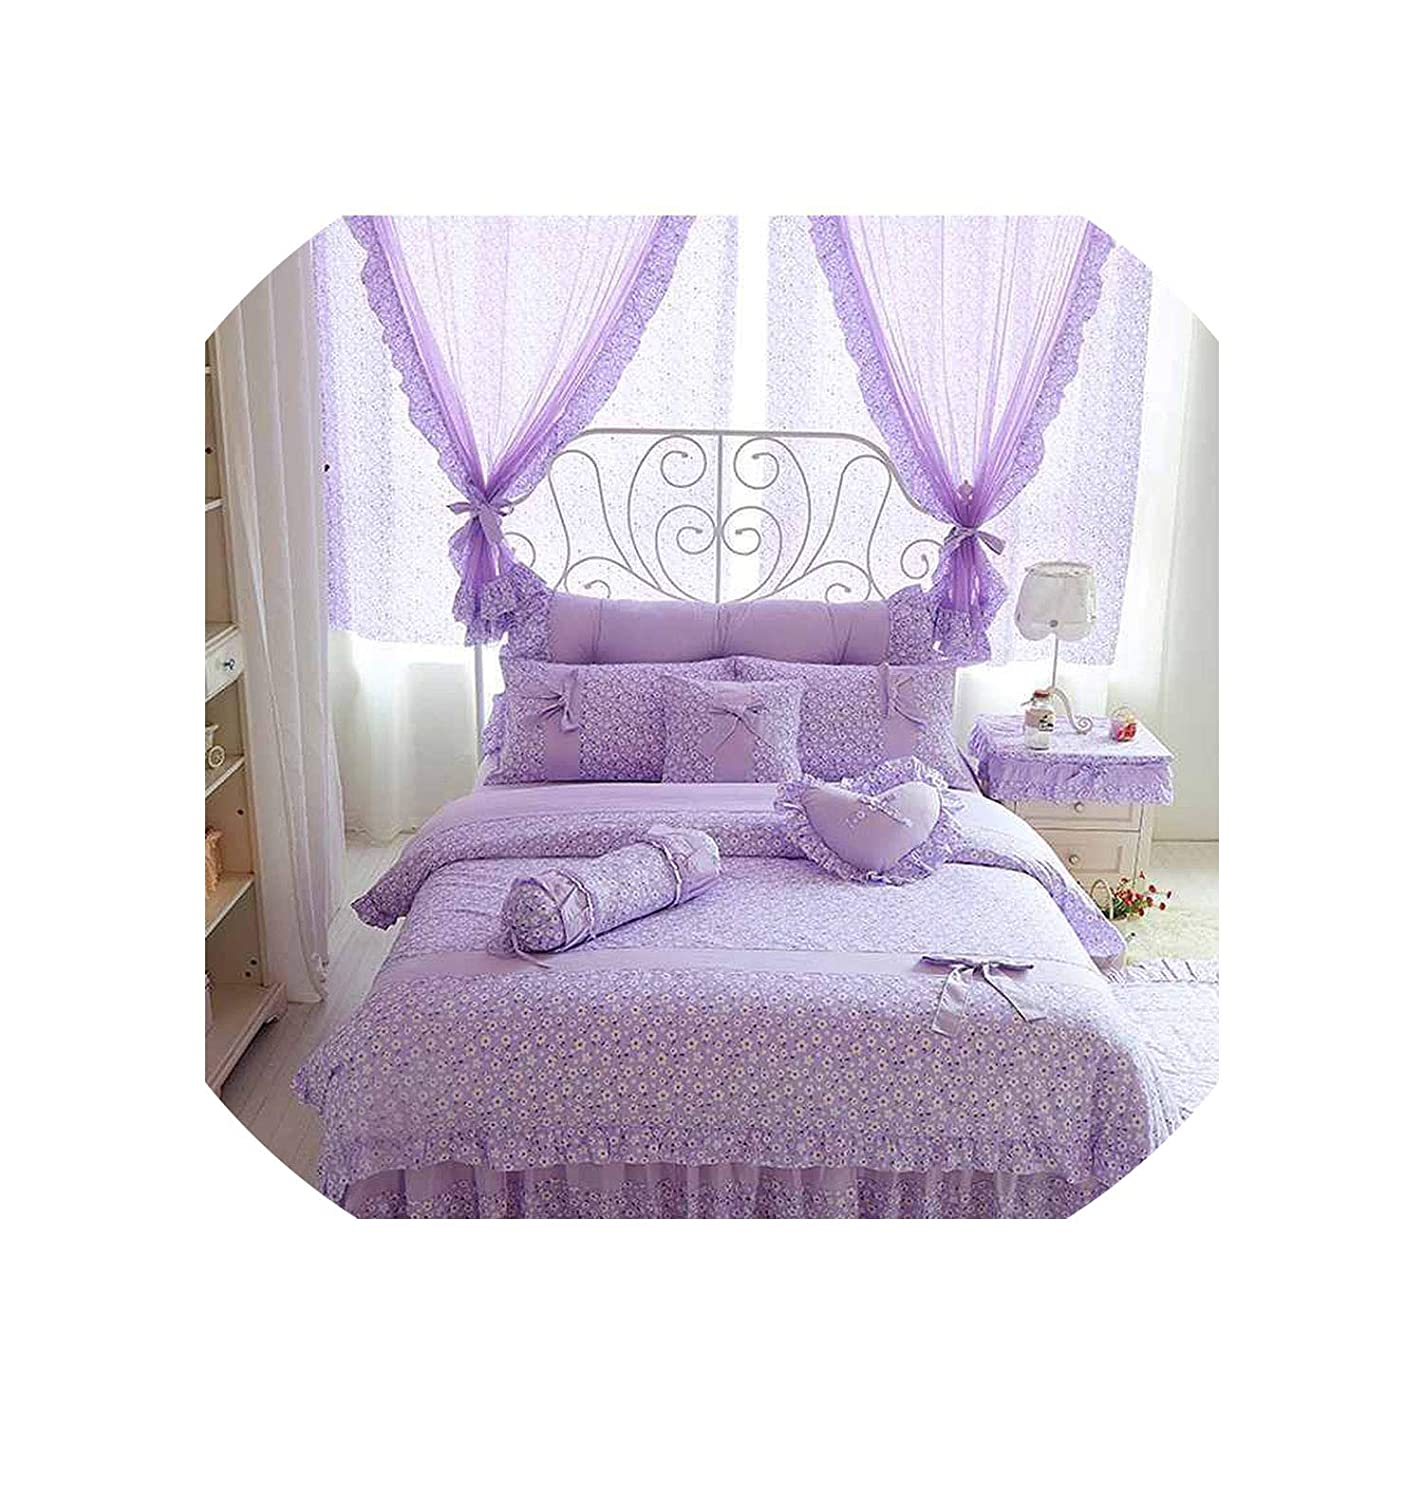 Cherry Printing 100 Cotton Bedding Sets King Queen Size Bow Design Quilt Cover Ruffles Bedspread Bed Linen Pillowcases 4/6/8Pcs,Purple Without Lace,King Size 8Pcs